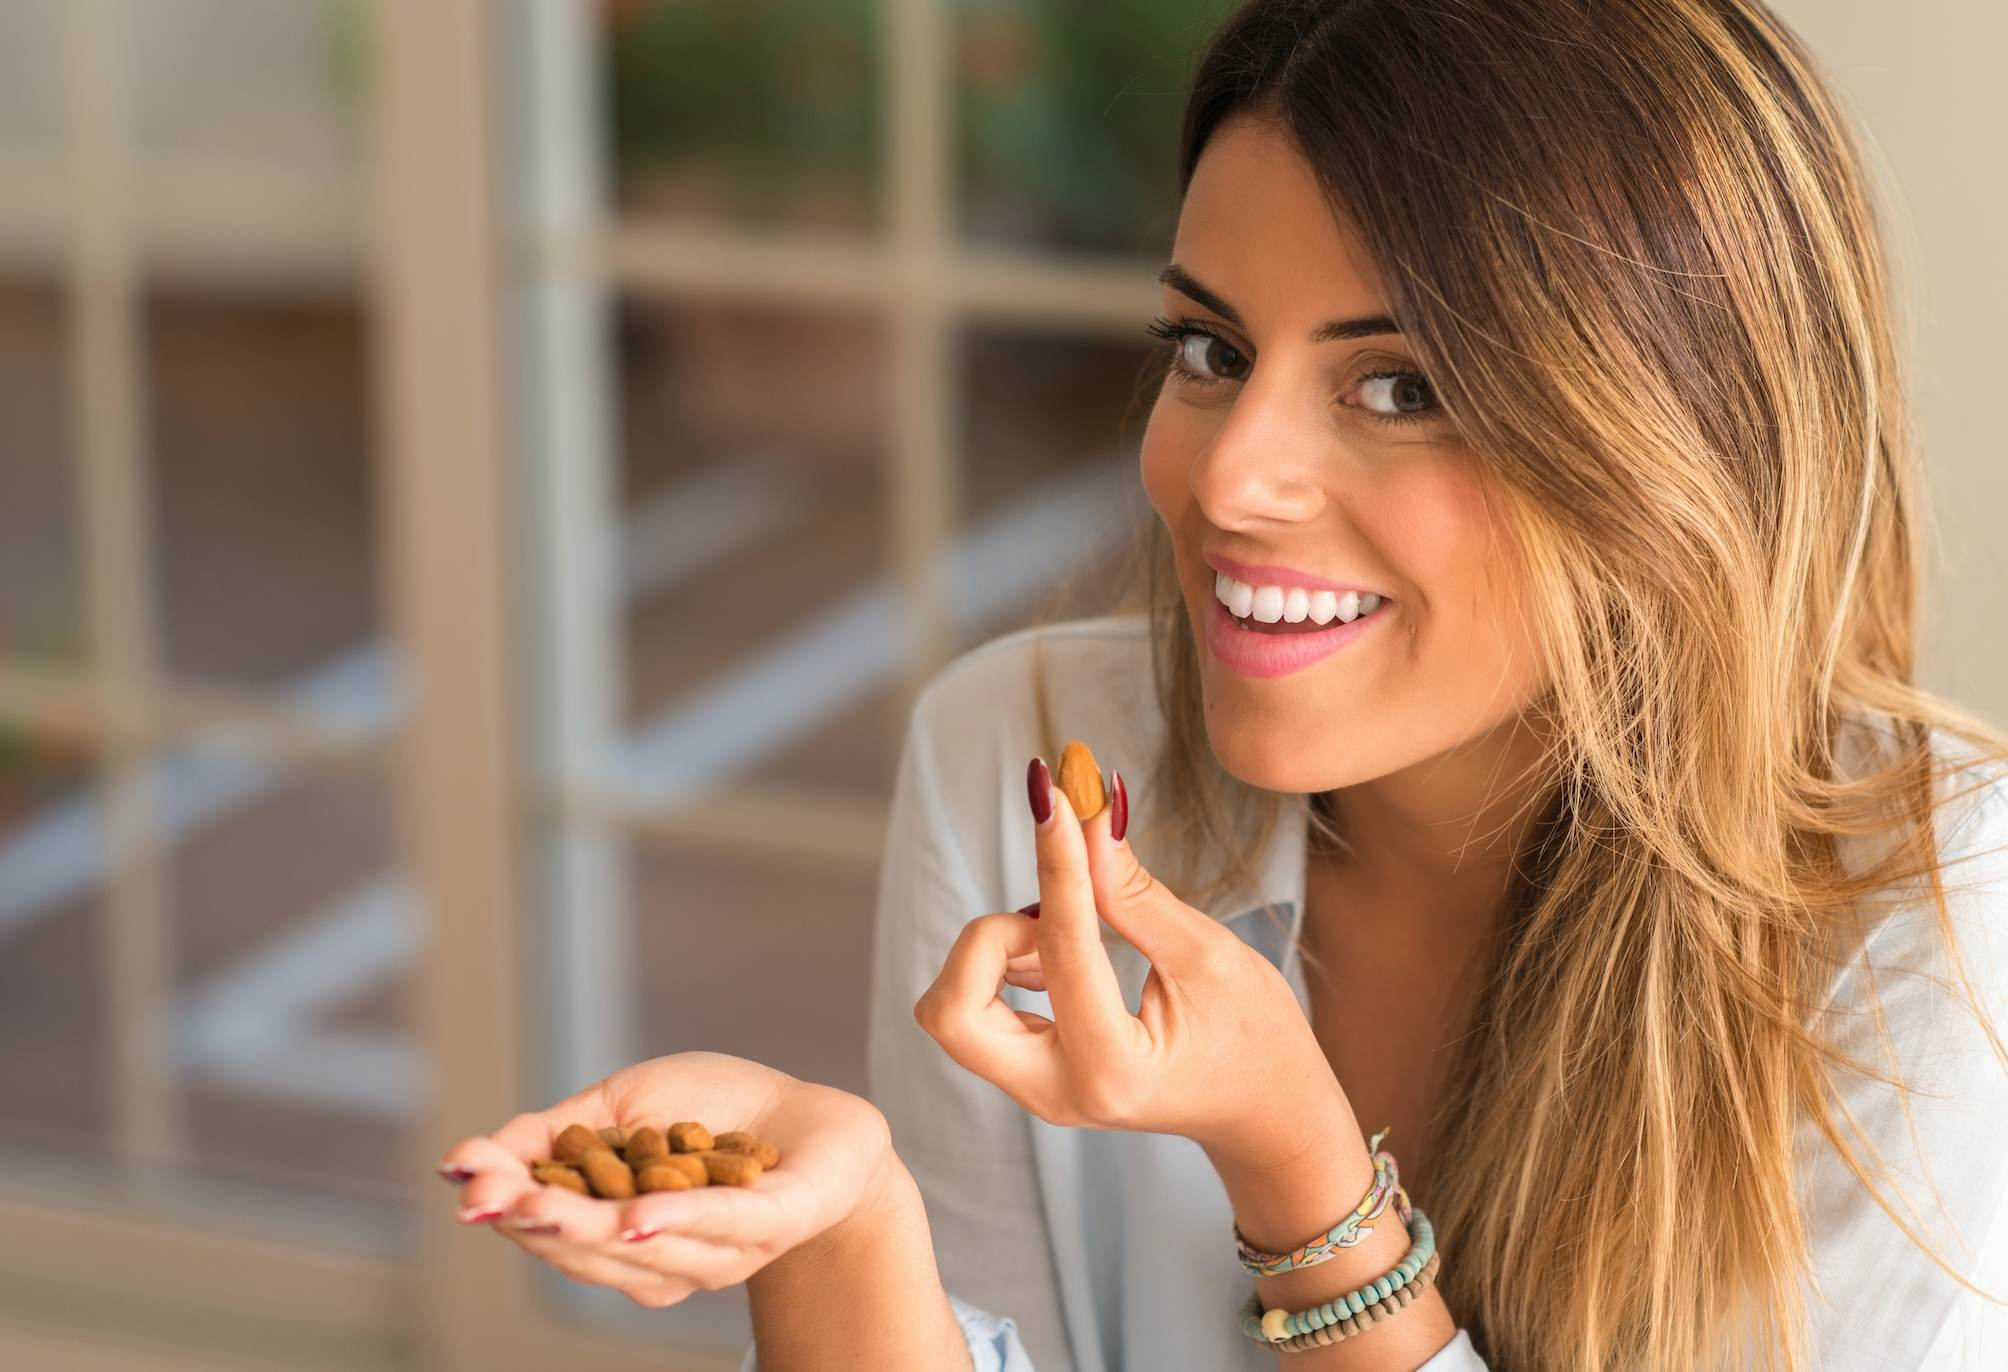 A woman eating nuts